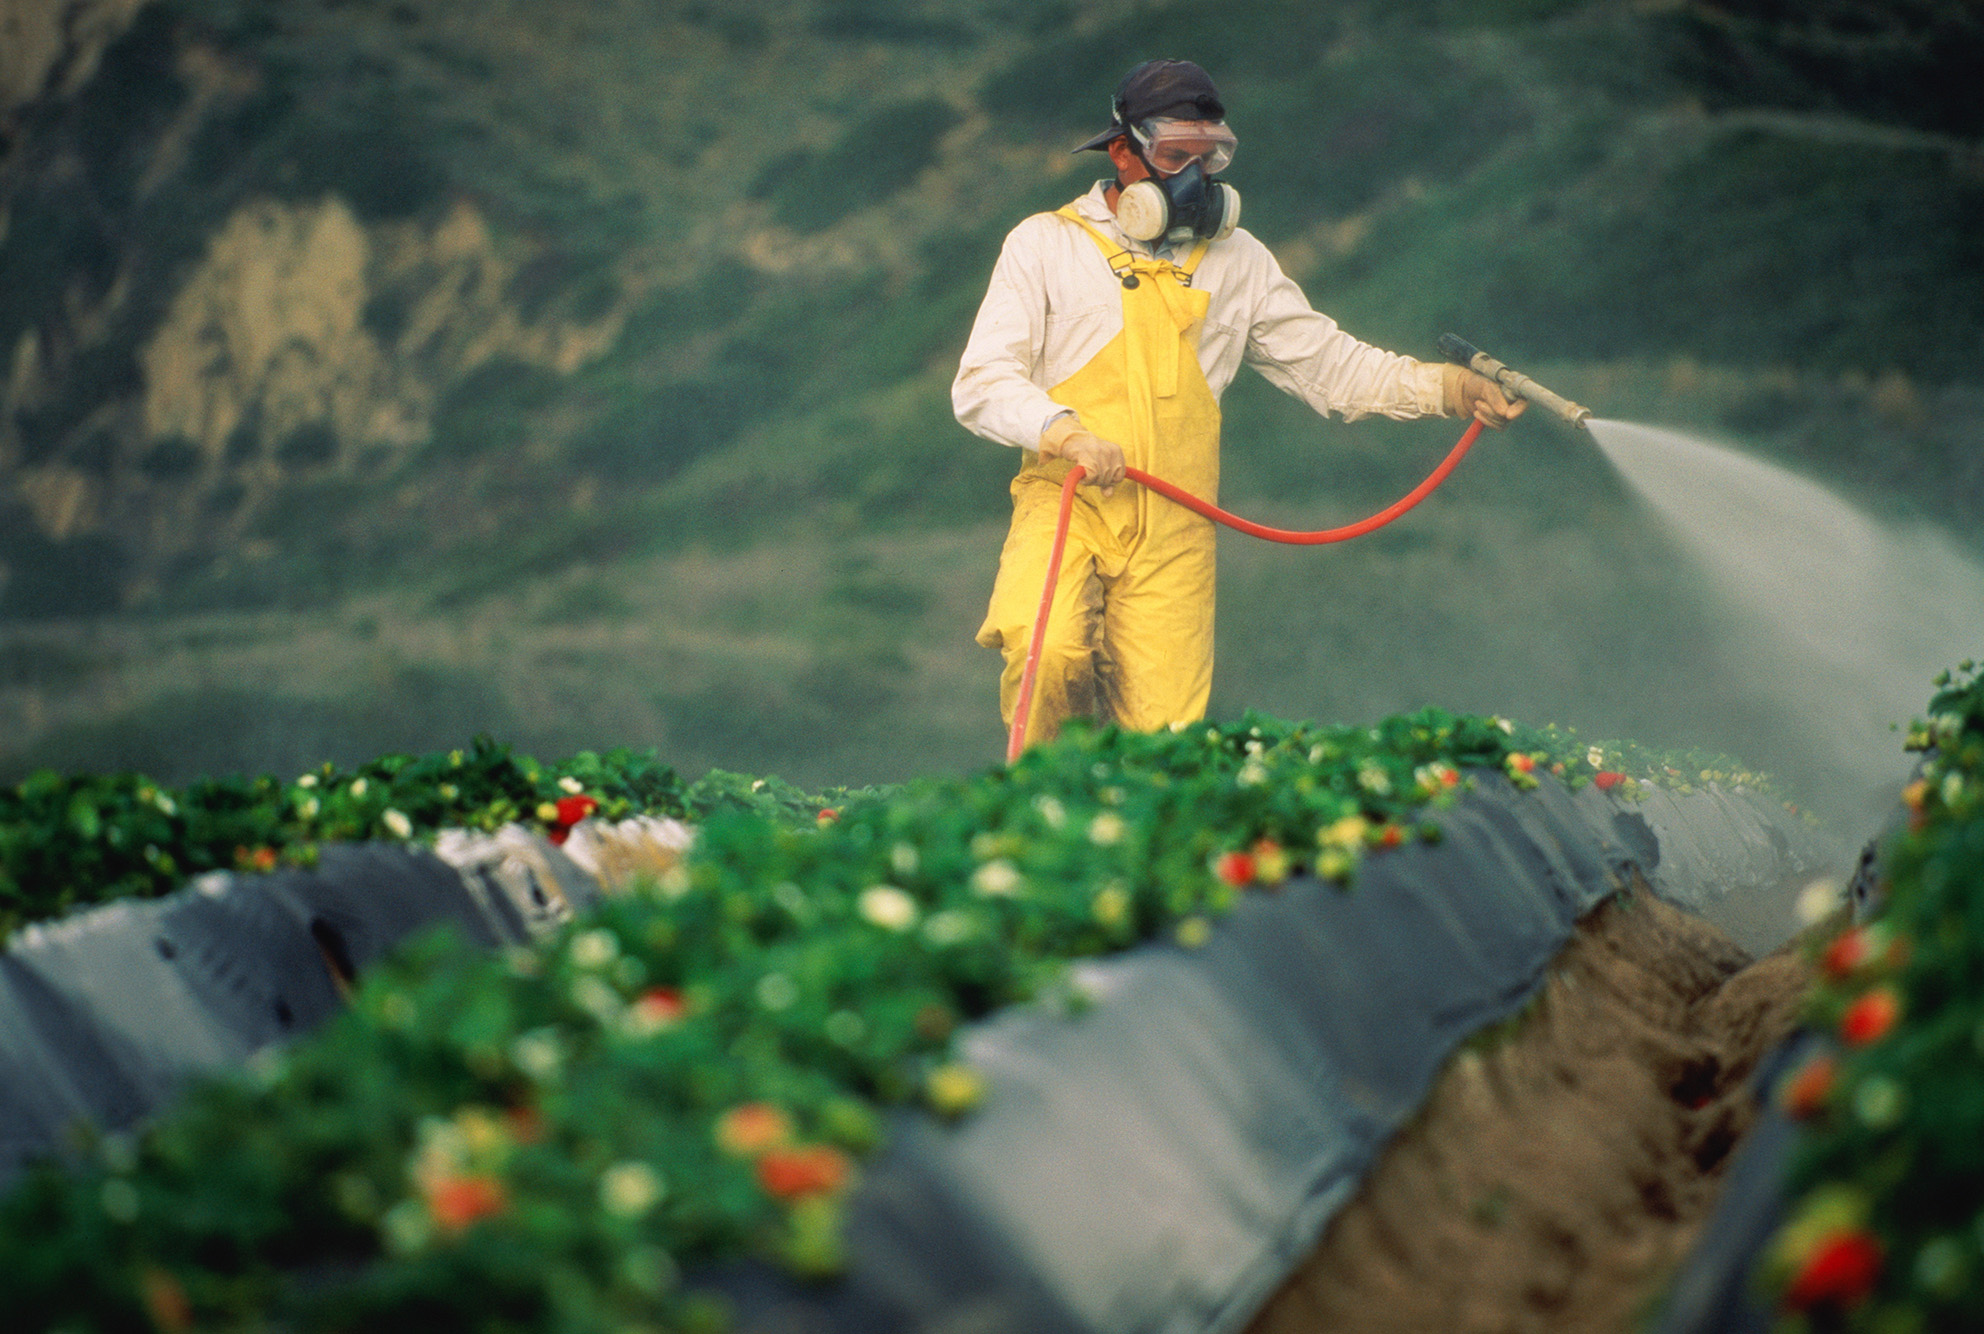 Pesticides banned in some countries